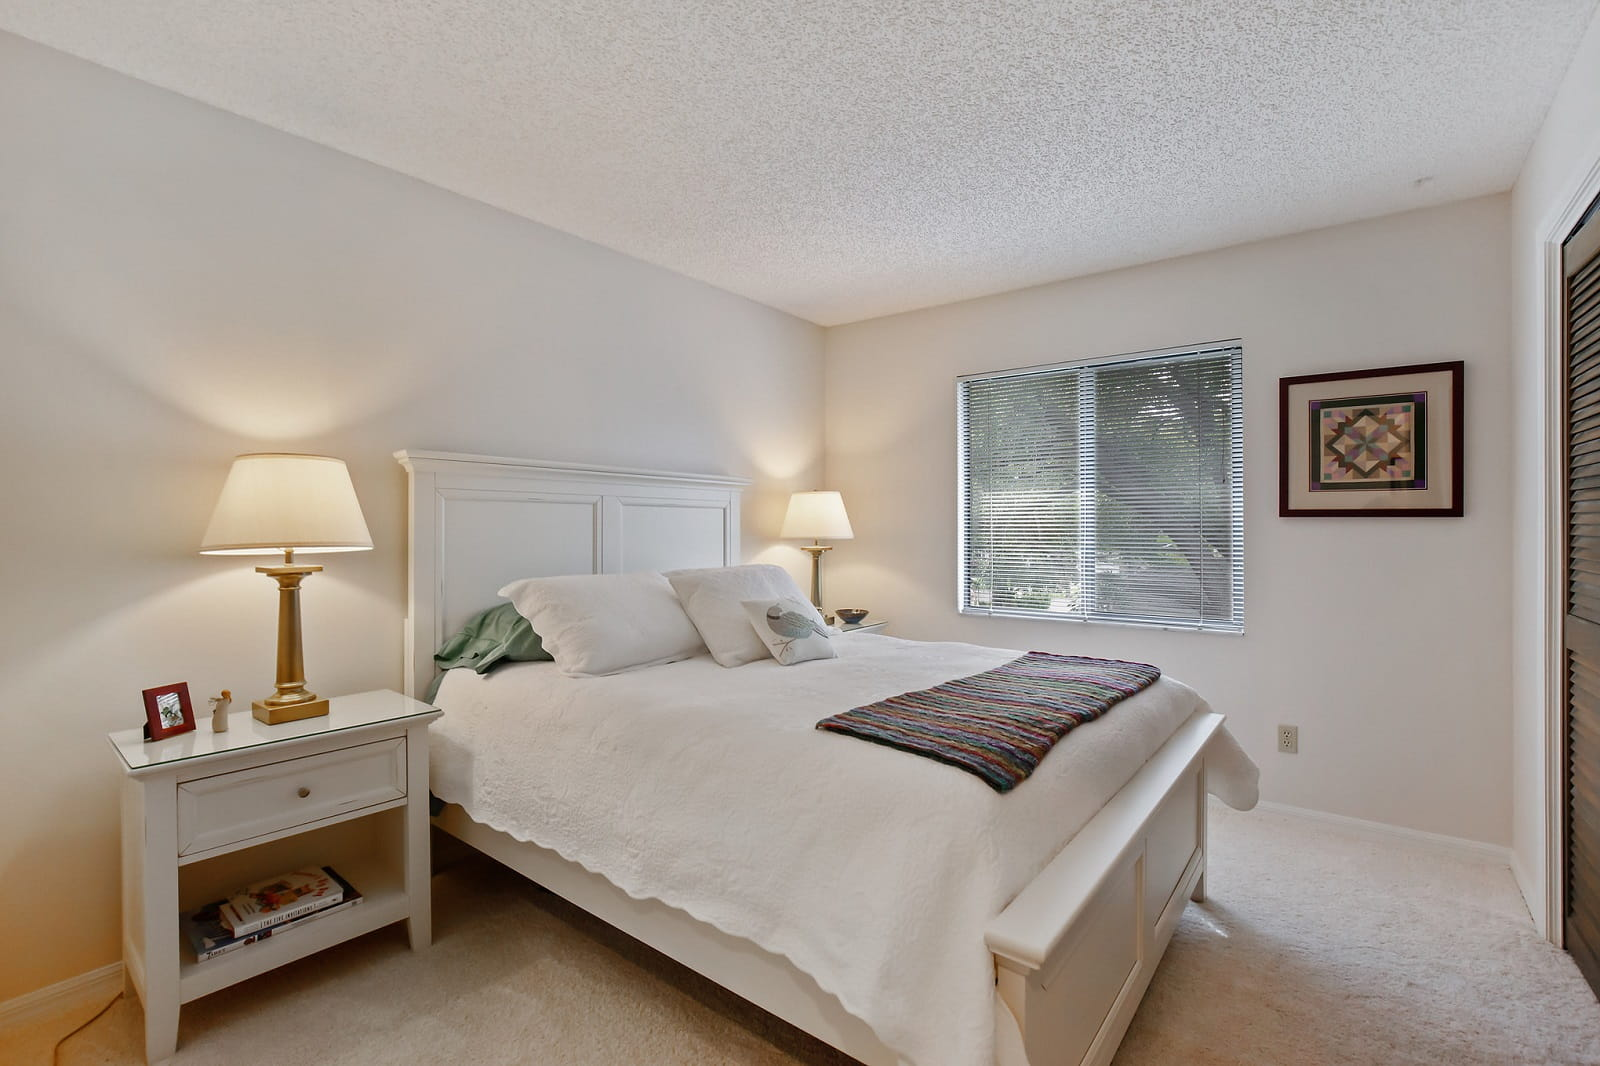 Real Estate Photography in Tampa - FL - USA - Bedroom View